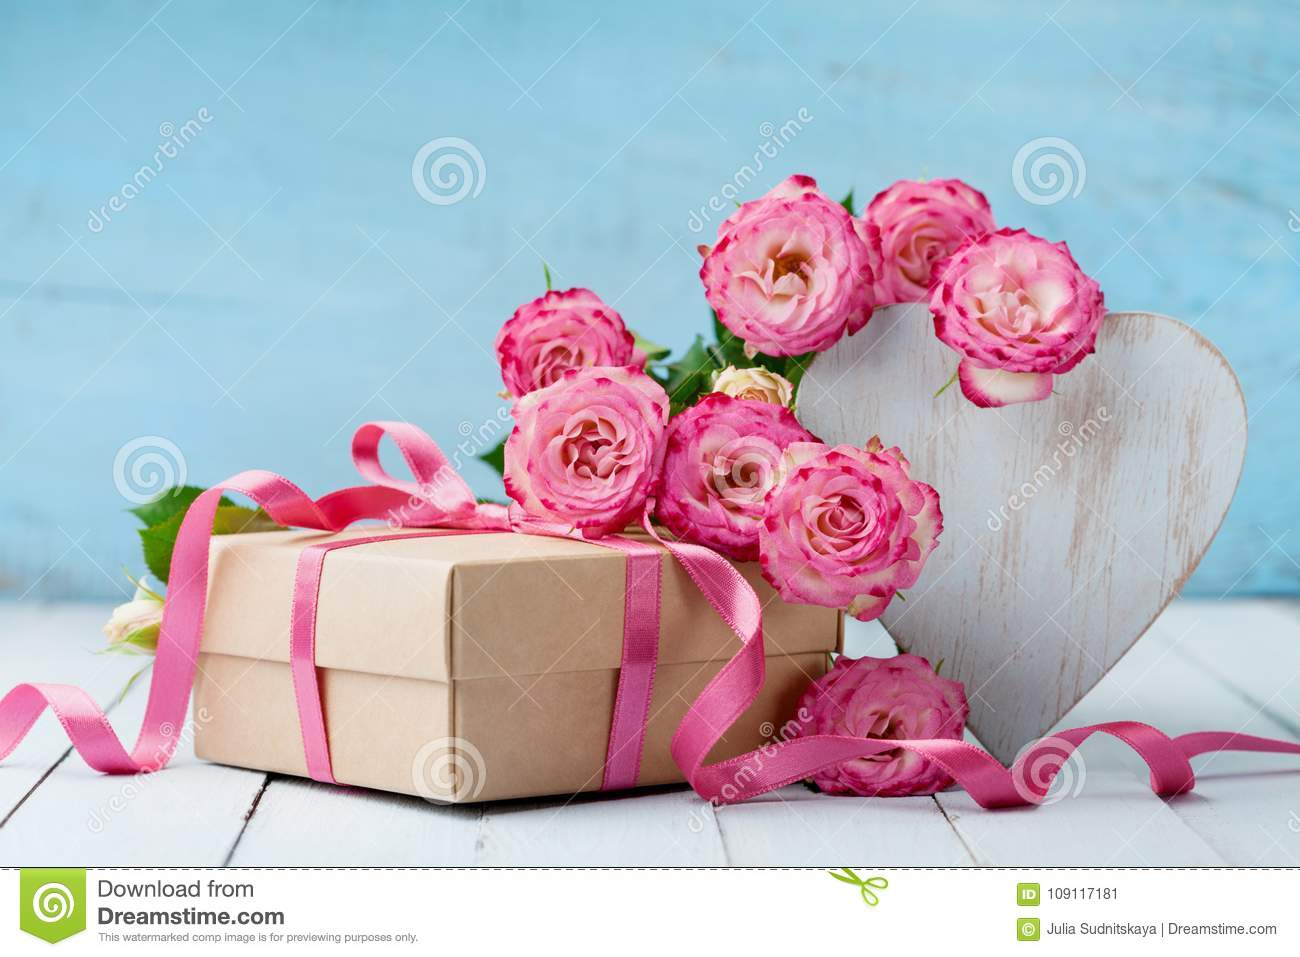 Wooden Heart Pink Rose Flowers And Gift Box On Turquoise Table